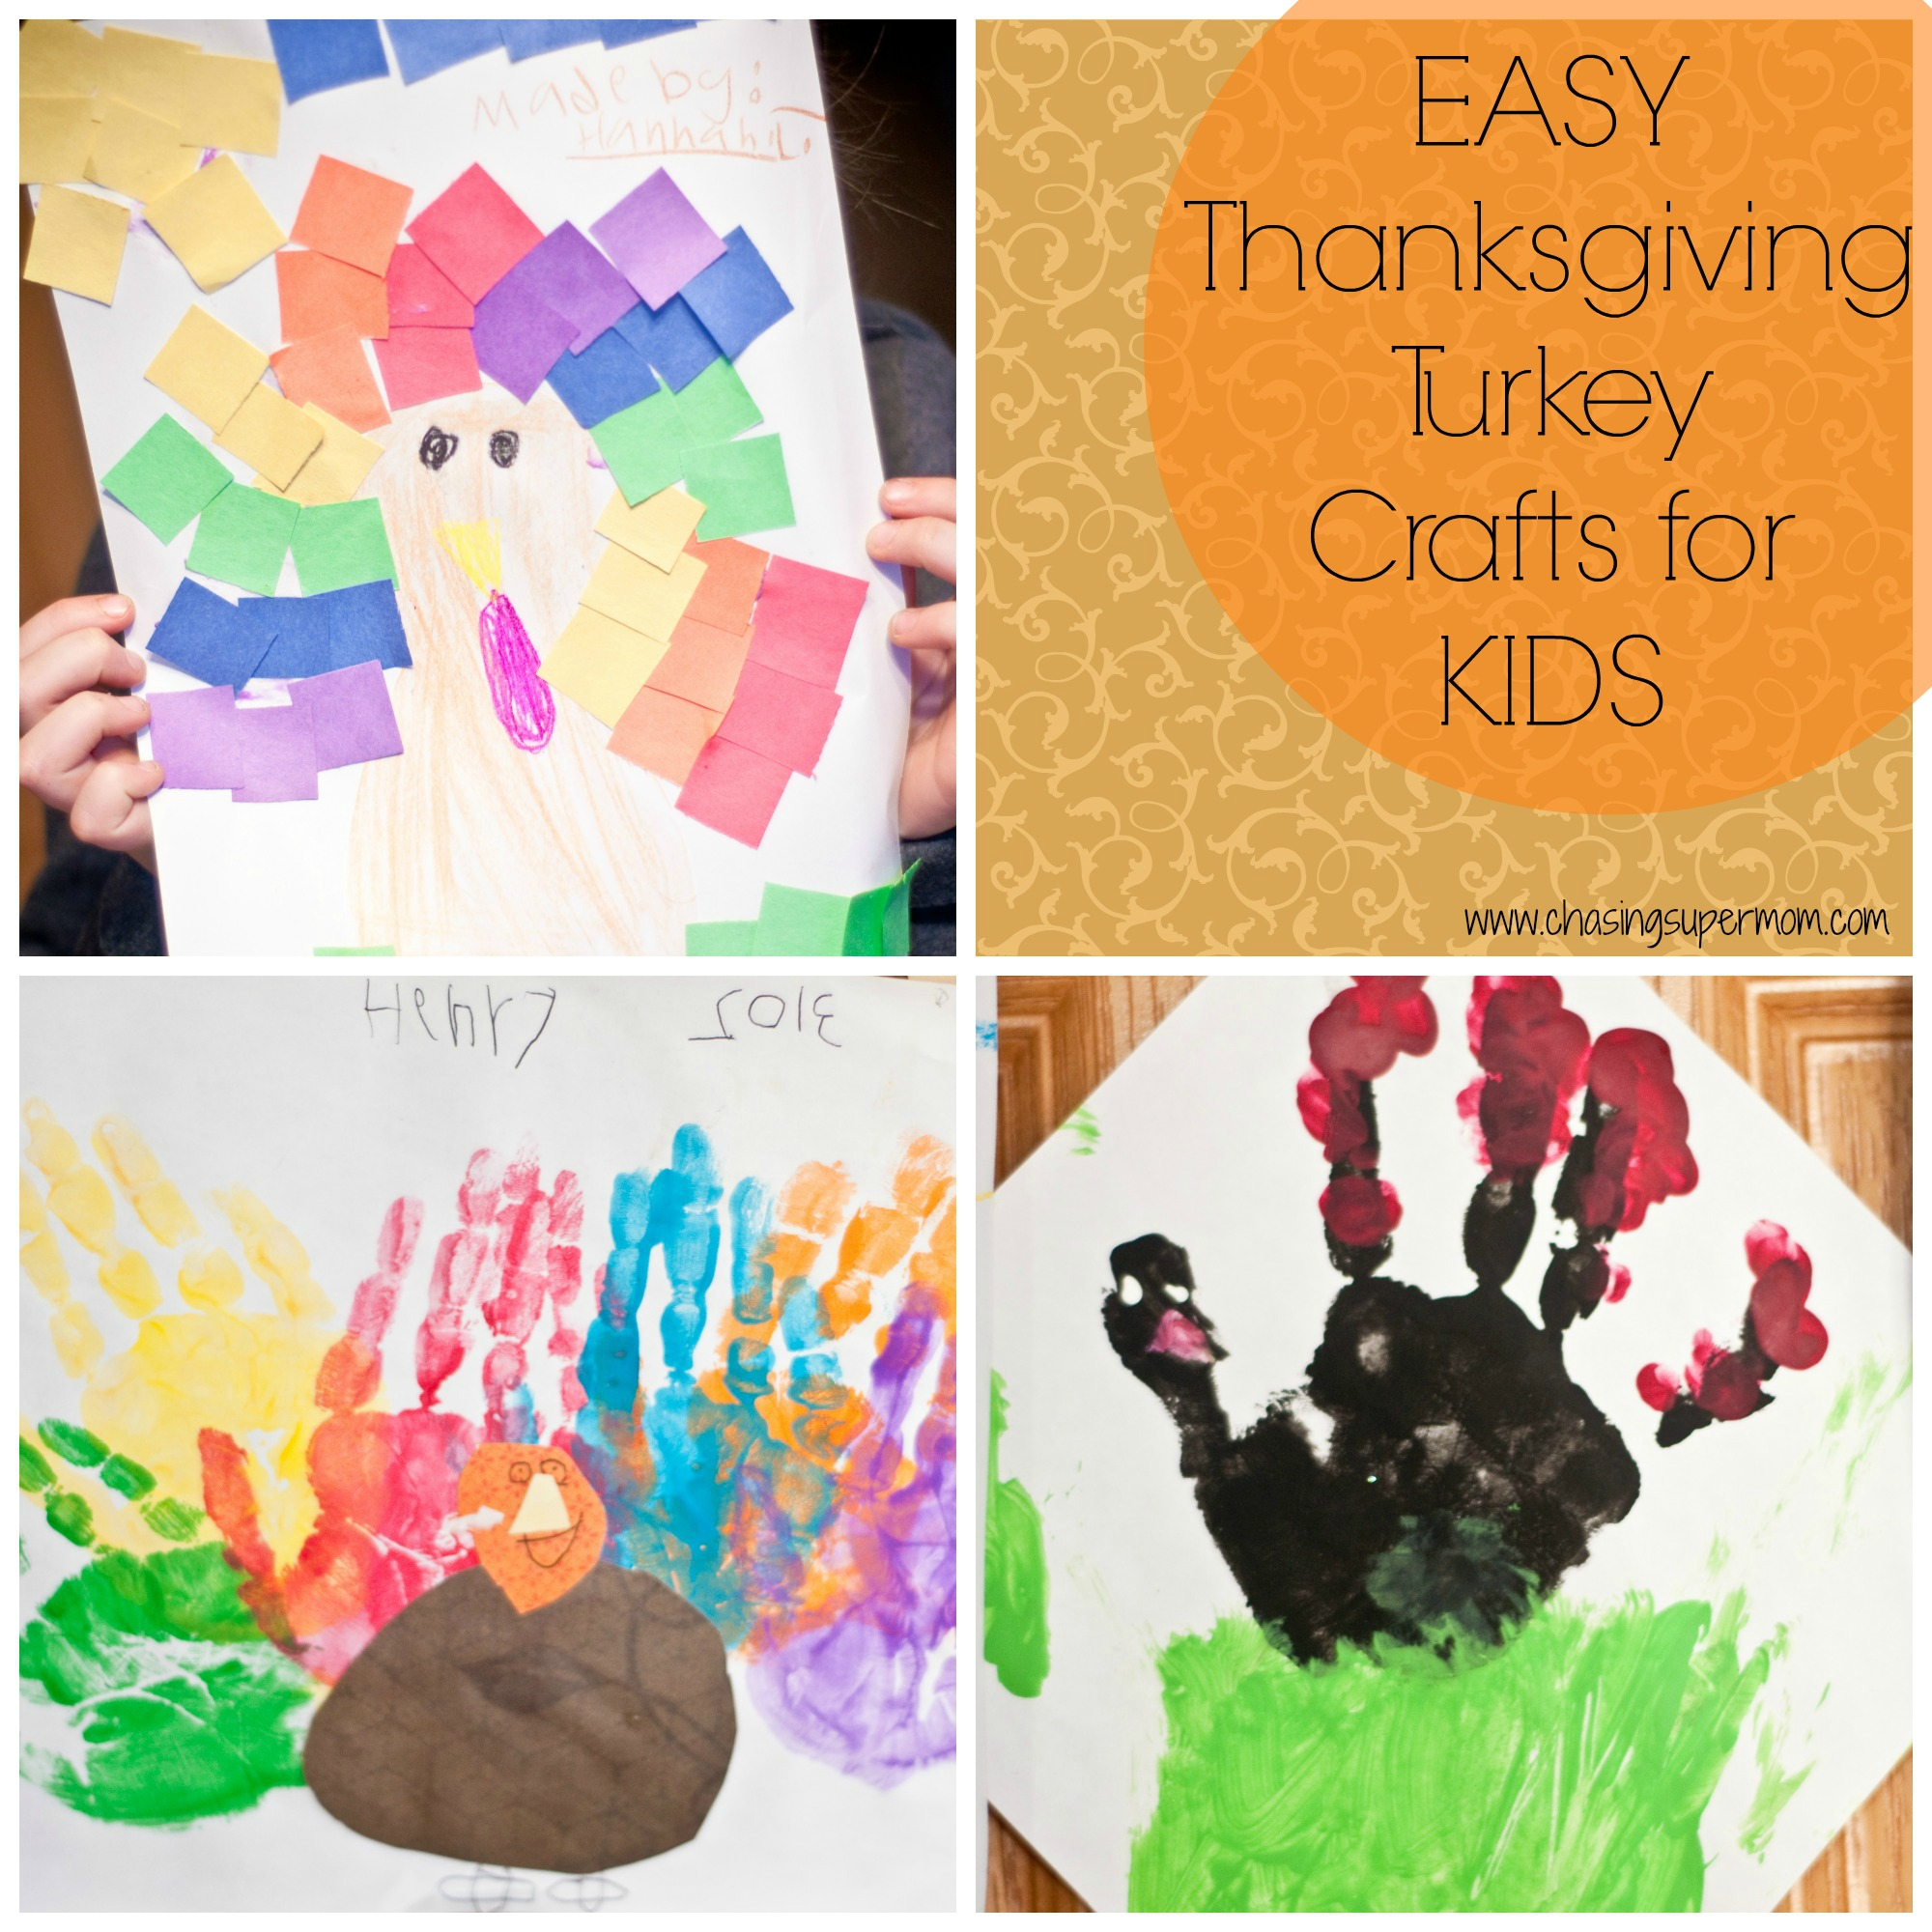 Simple Thanksgiving Turkey Crafts for Kids